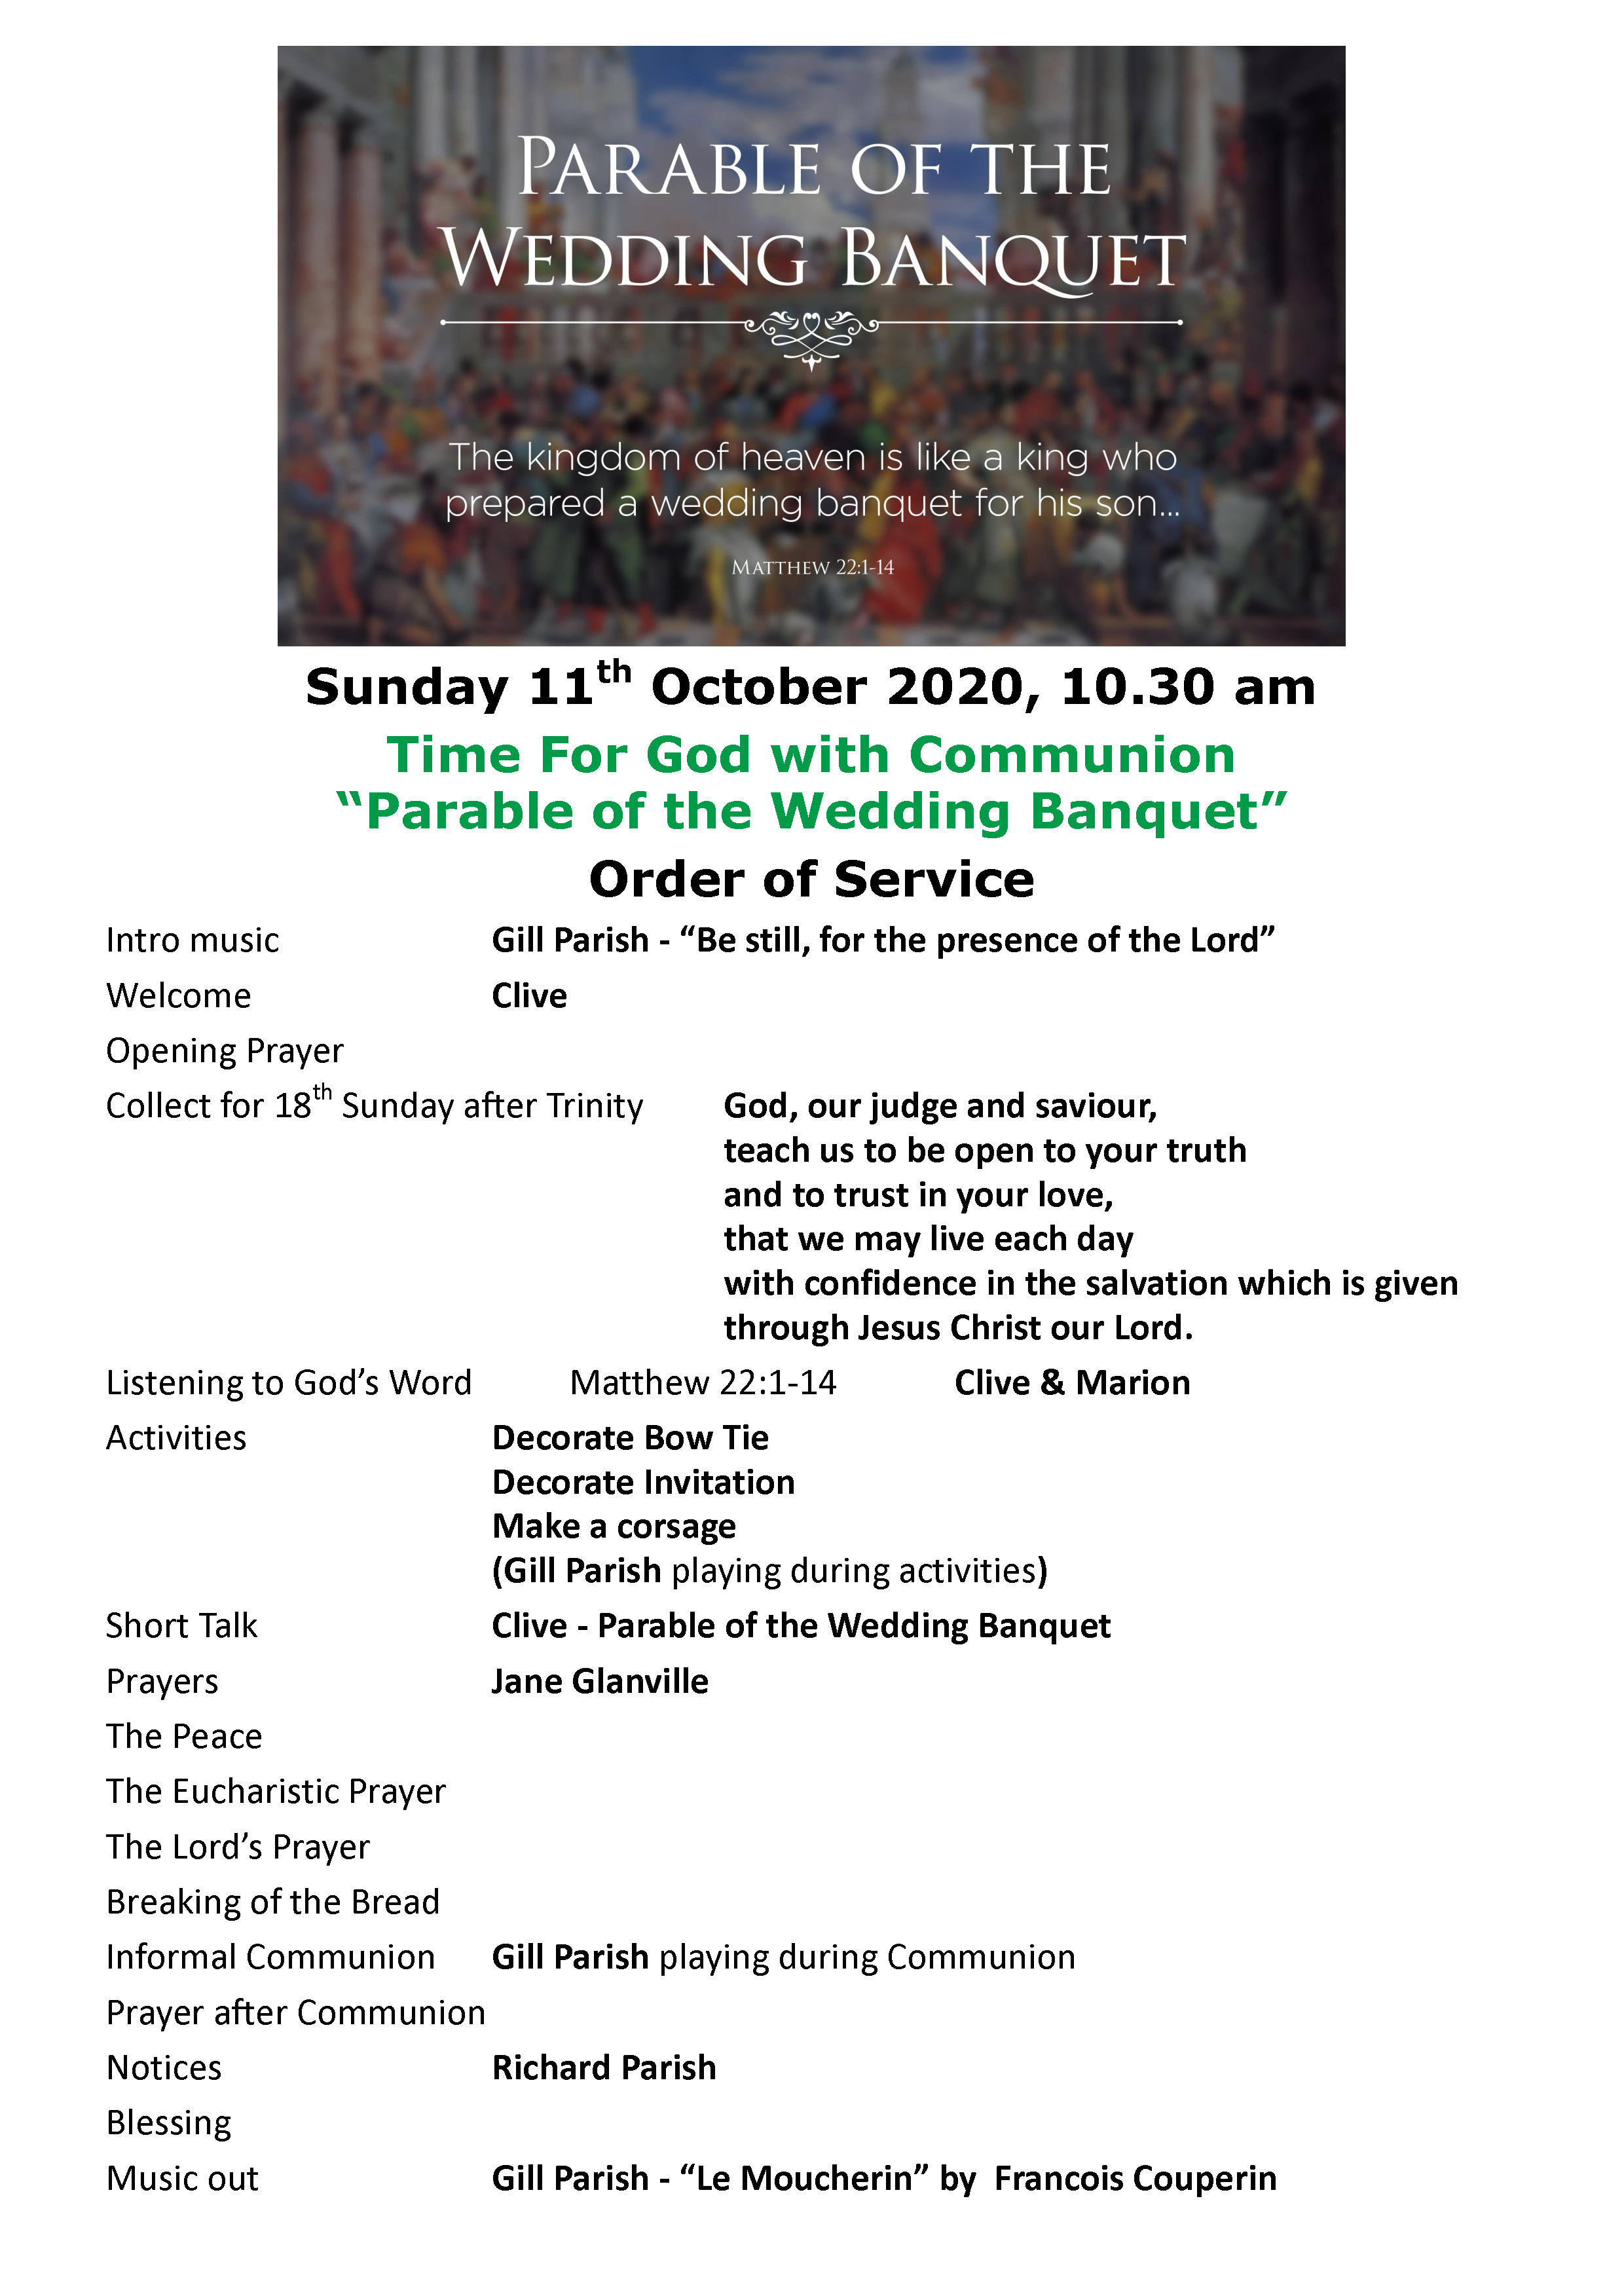 Order of Service 11th October 2020